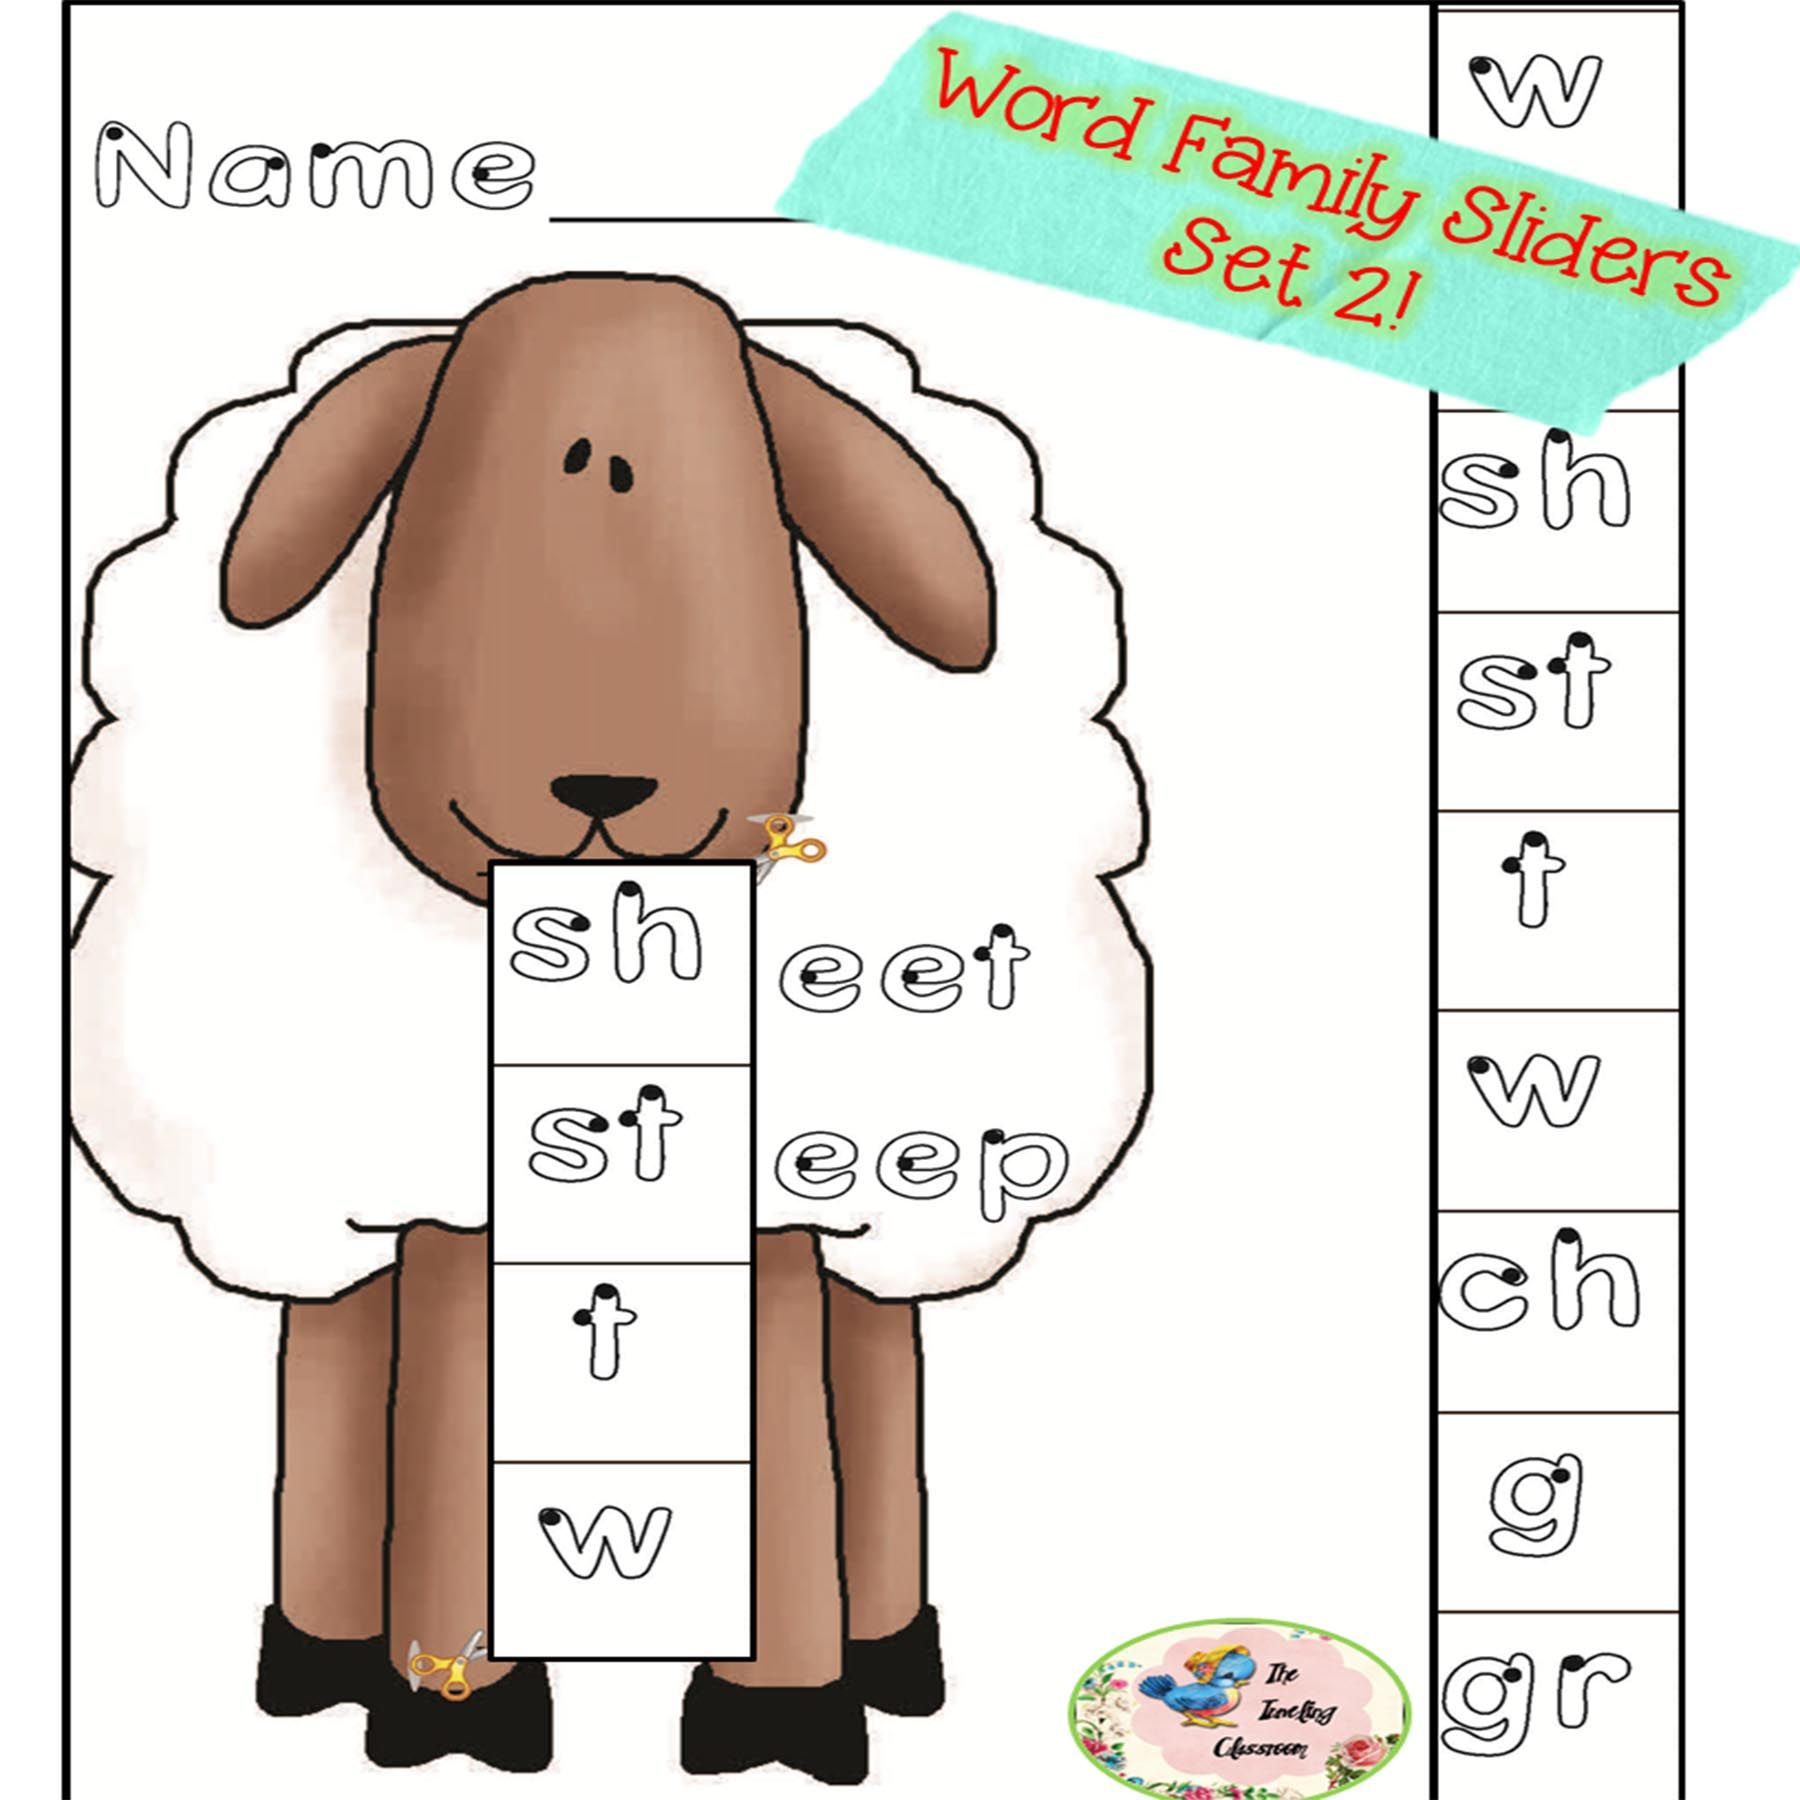 Word Families Set 2 Common Core With Images